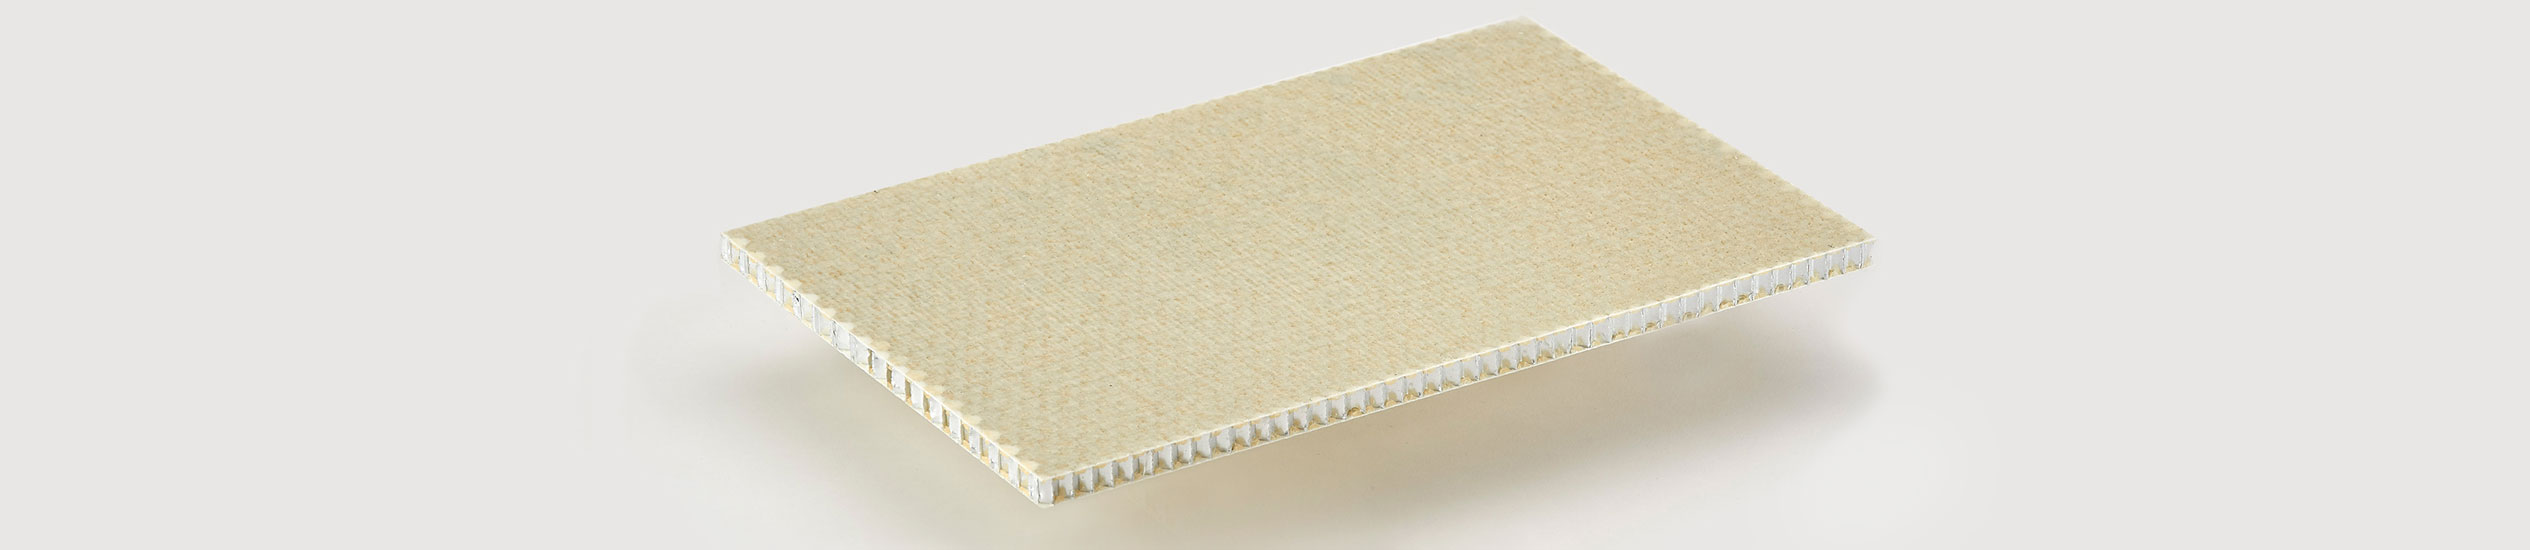 ALUSTEP® 500 LIGHT is a sandwich panel with a core in aluminium honeycomb faced with fiber glass impregnated with epoxy resin.